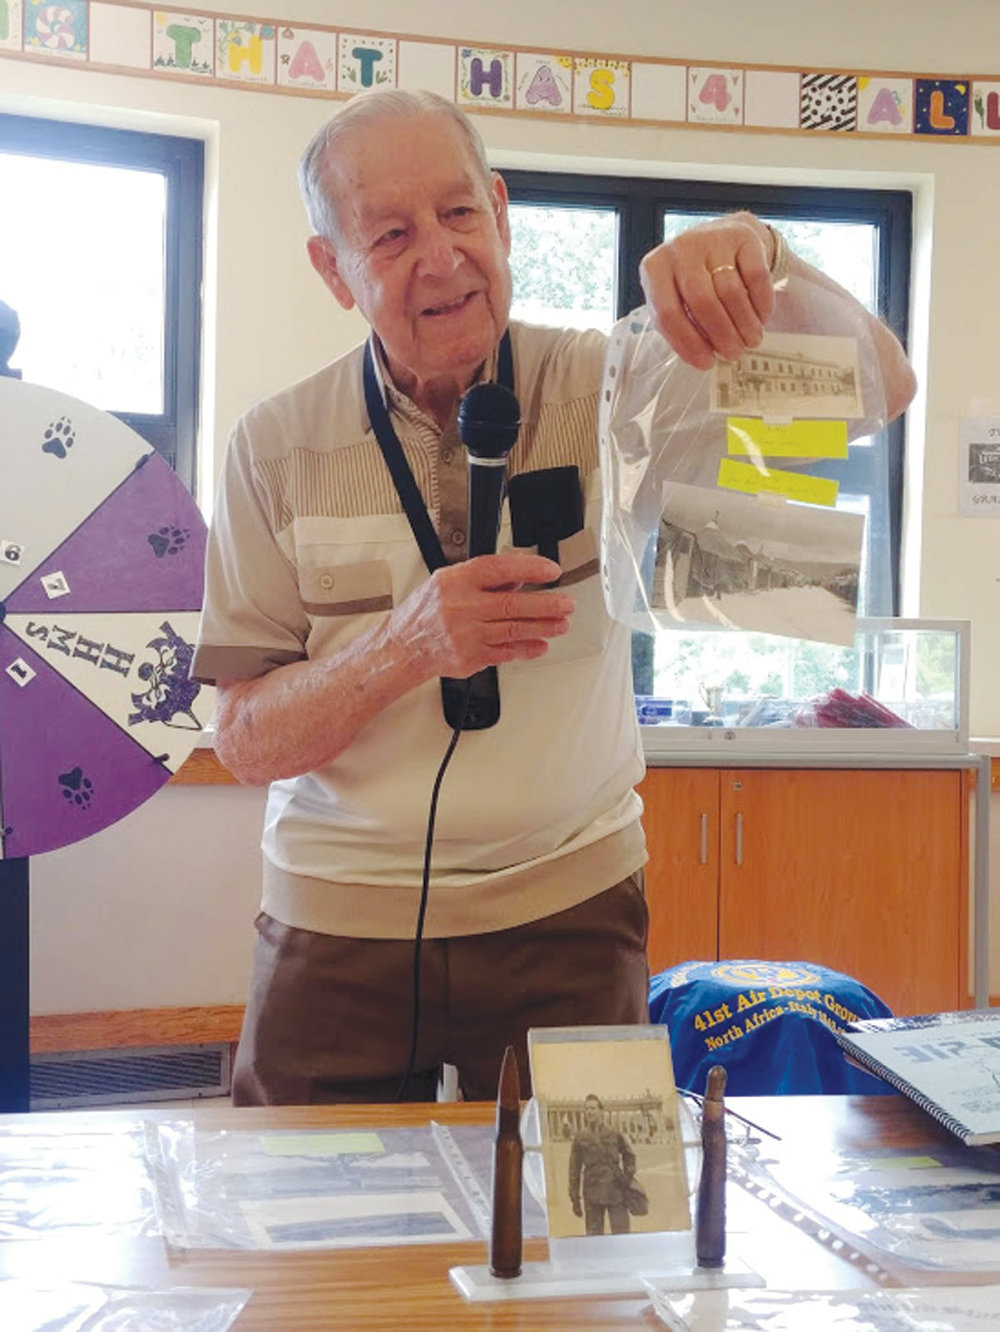 MEMORIES OF THE WAR: Domenic Giarrusso had a great deal of World War II memorabilia on display during his visit to Hope Highlands, including photographs, dog tags, ammunition, books and news articles.